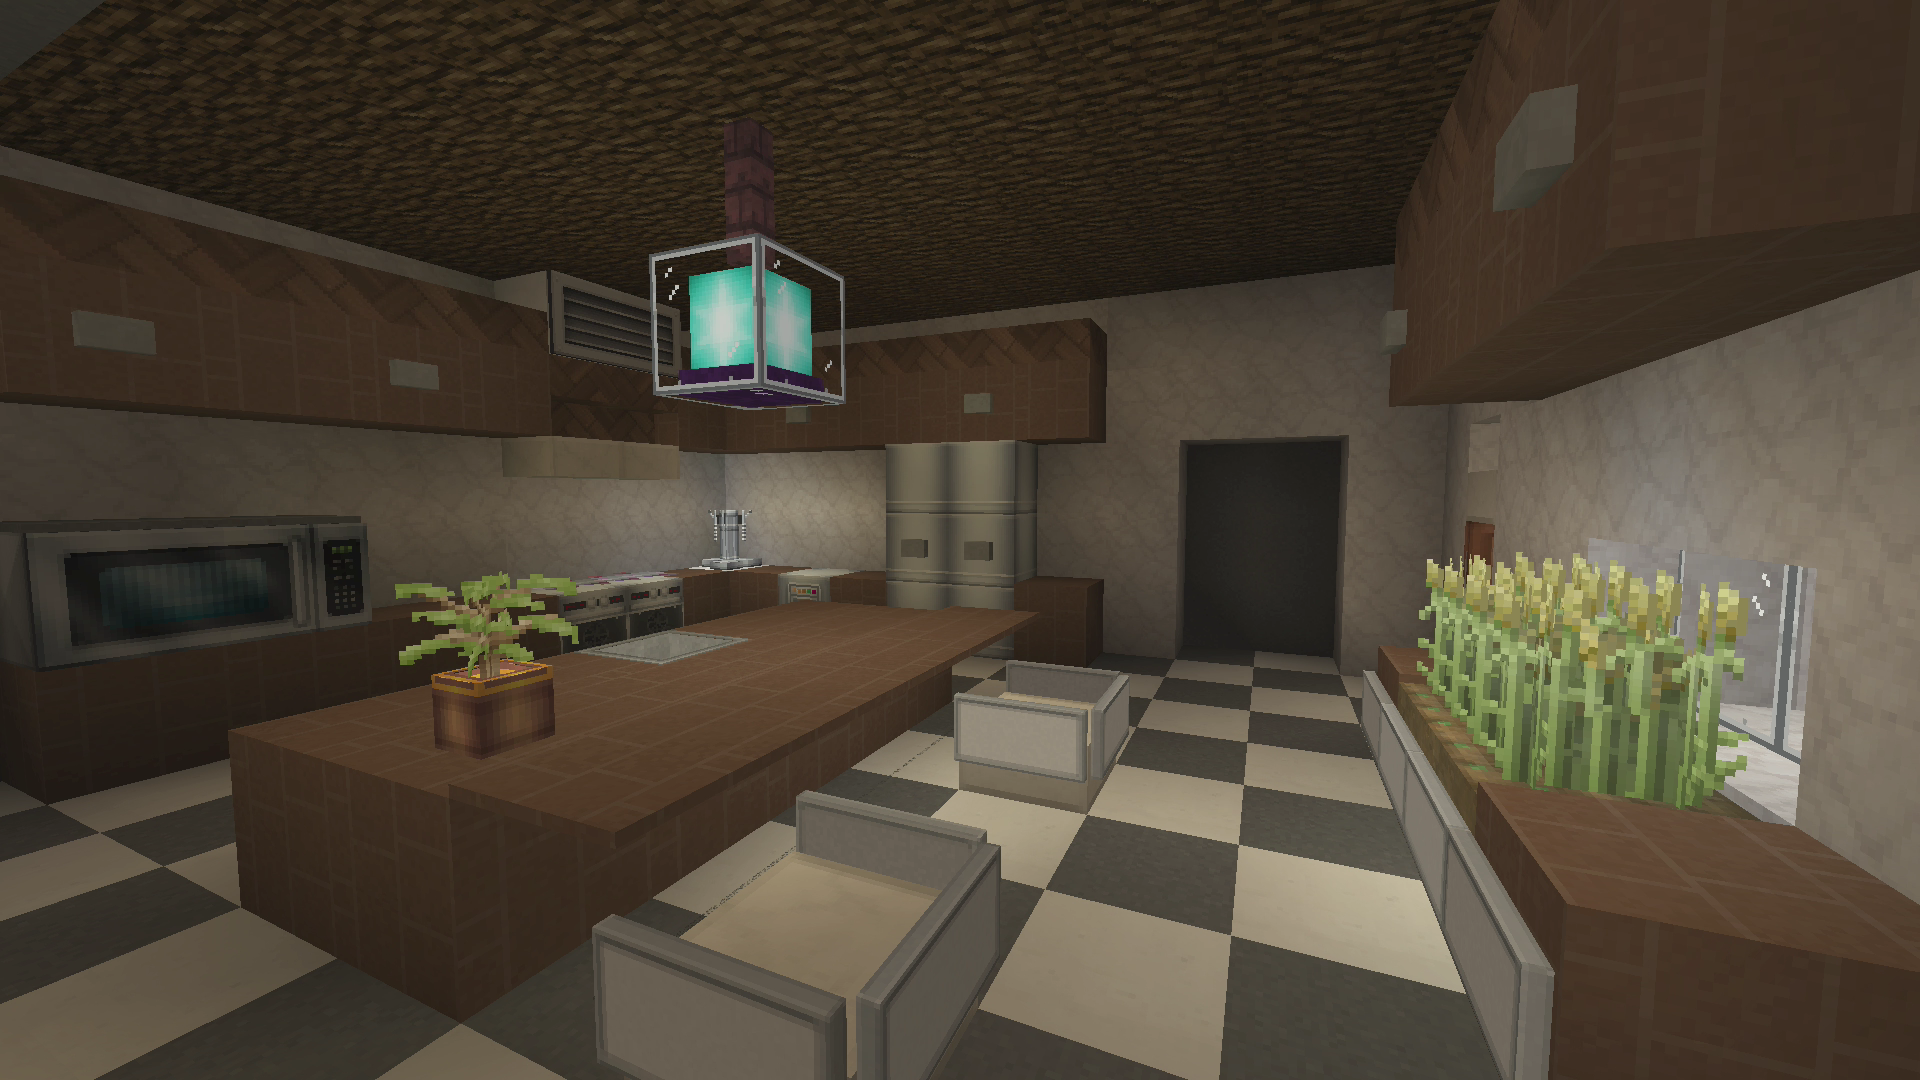 minecraft kitchen designs ideas youtube inside kitchen